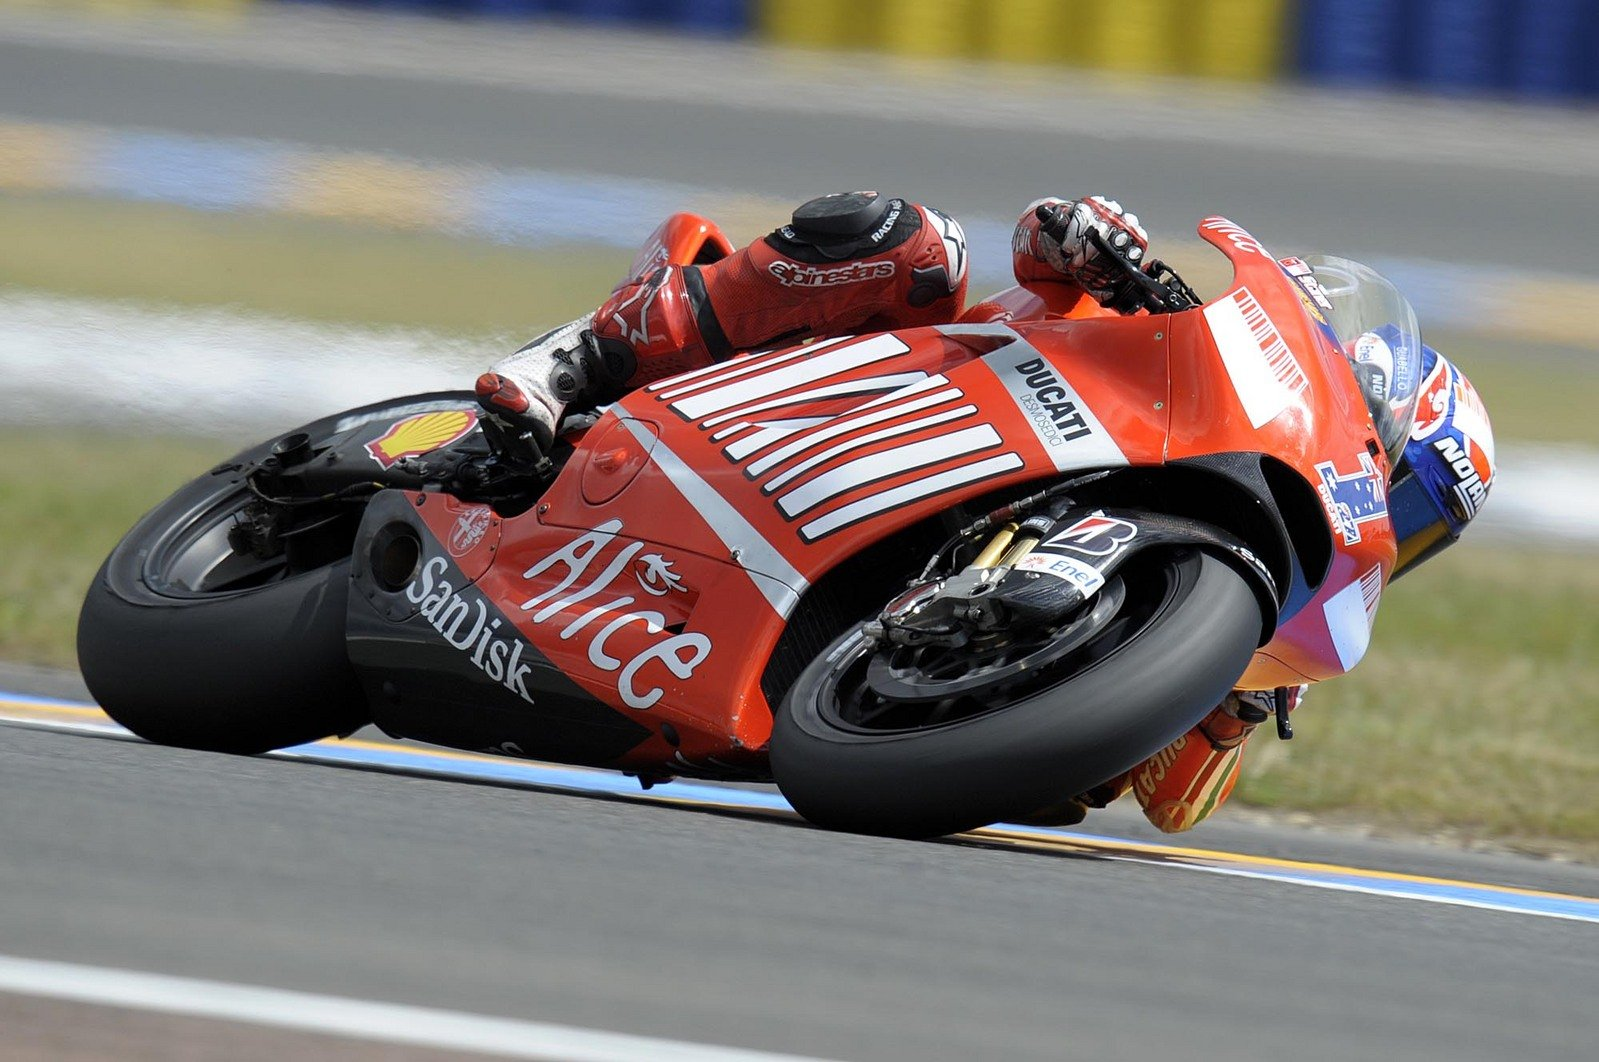 ducati motogp team complete first day of tests at le mans news top speed. Black Bedroom Furniture Sets. Home Design Ideas